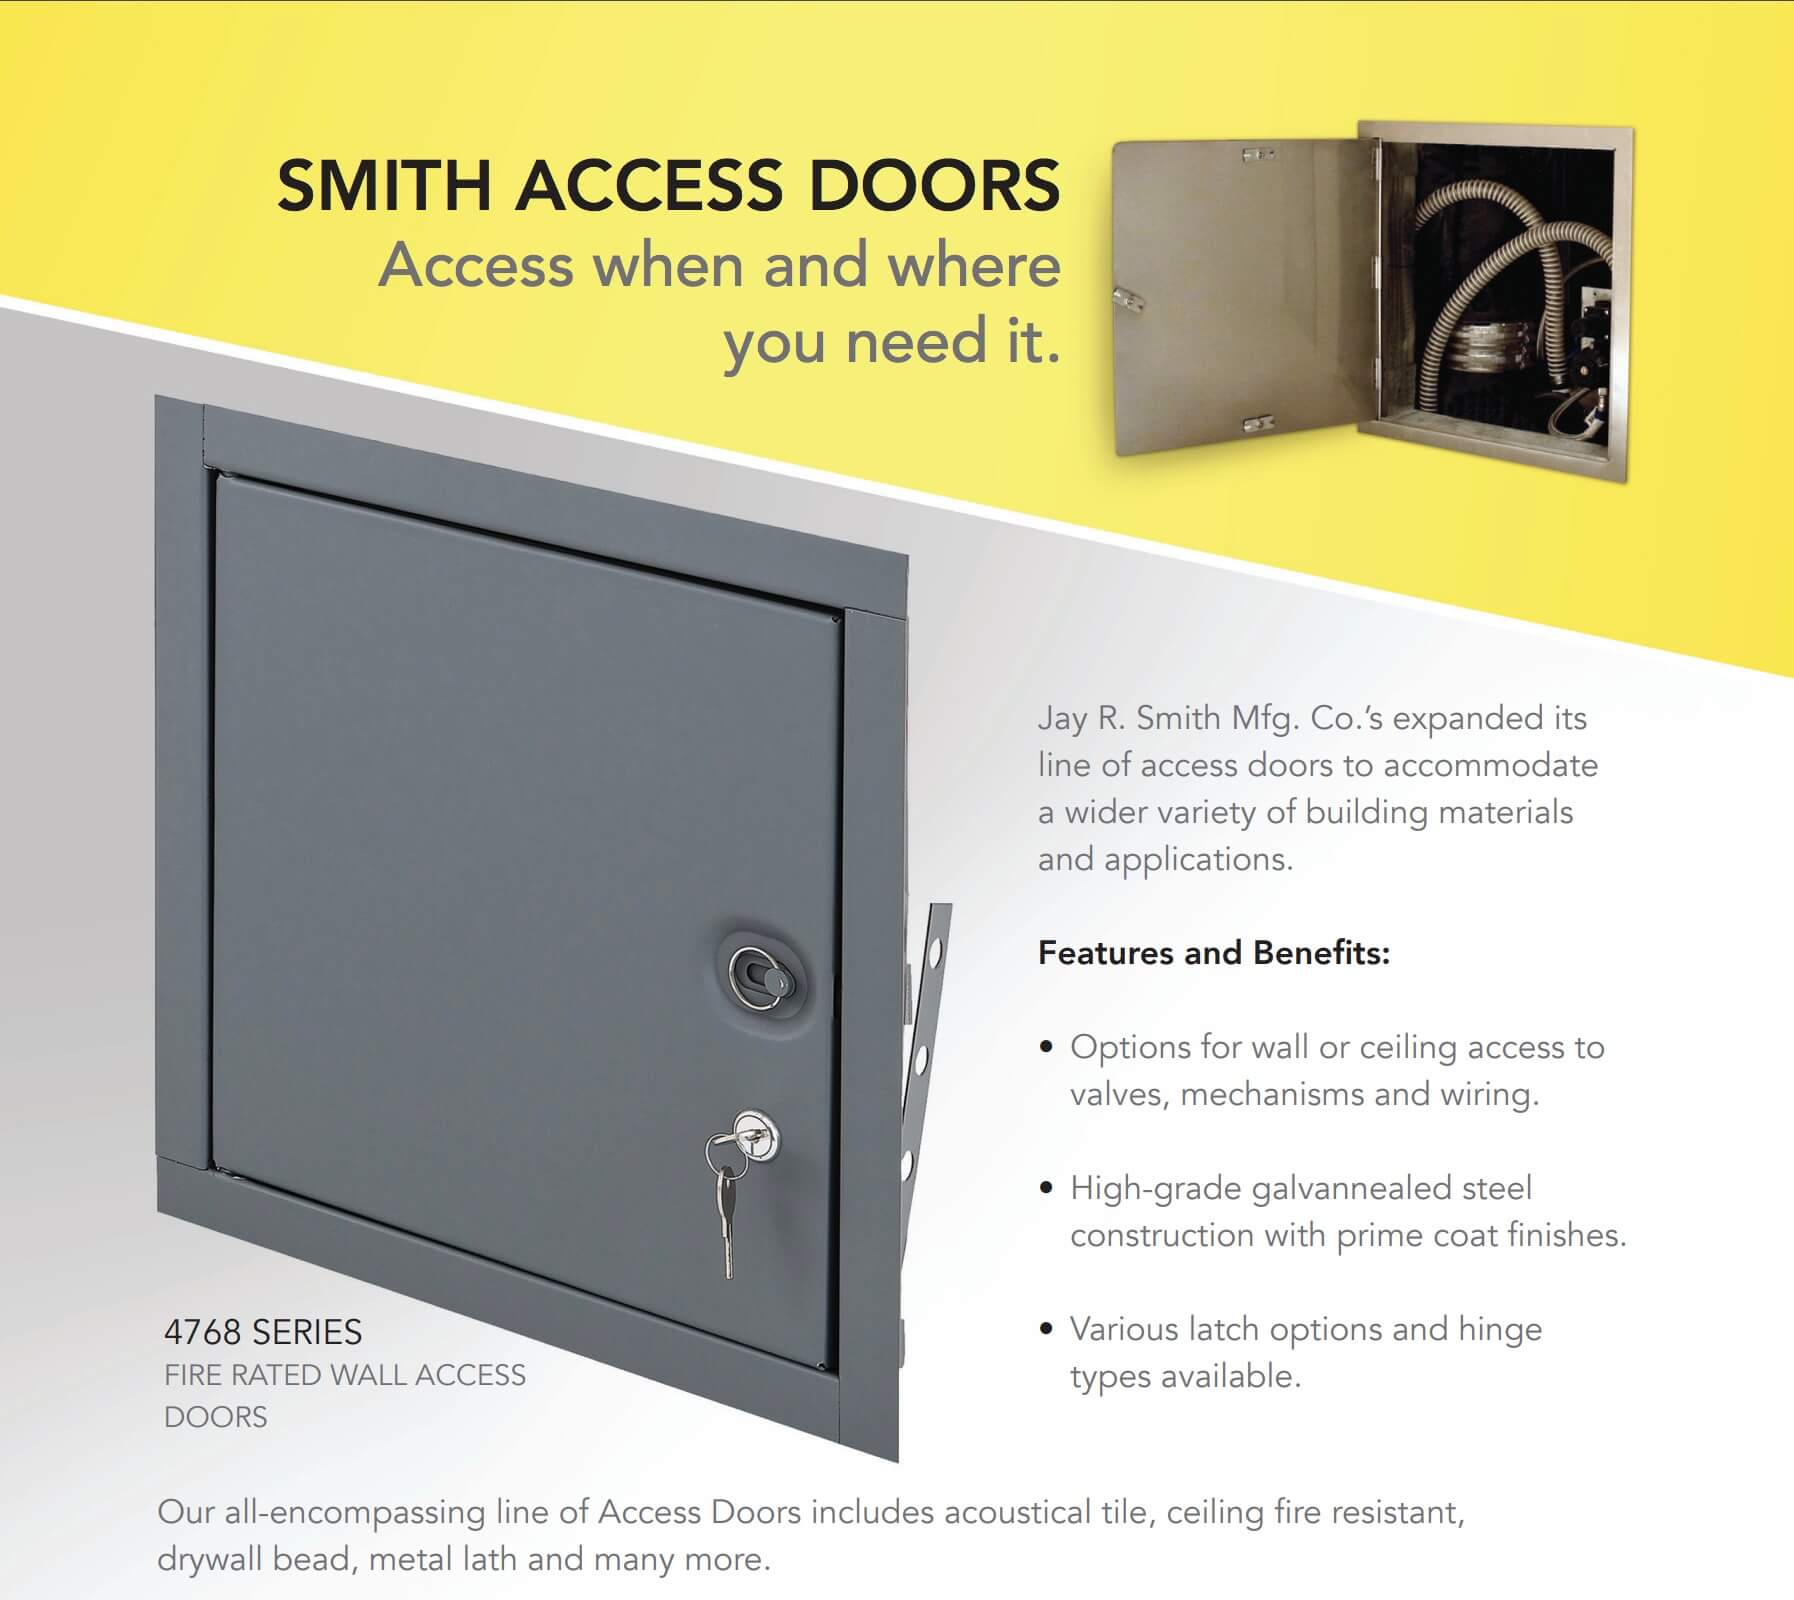 Smith Access Doors